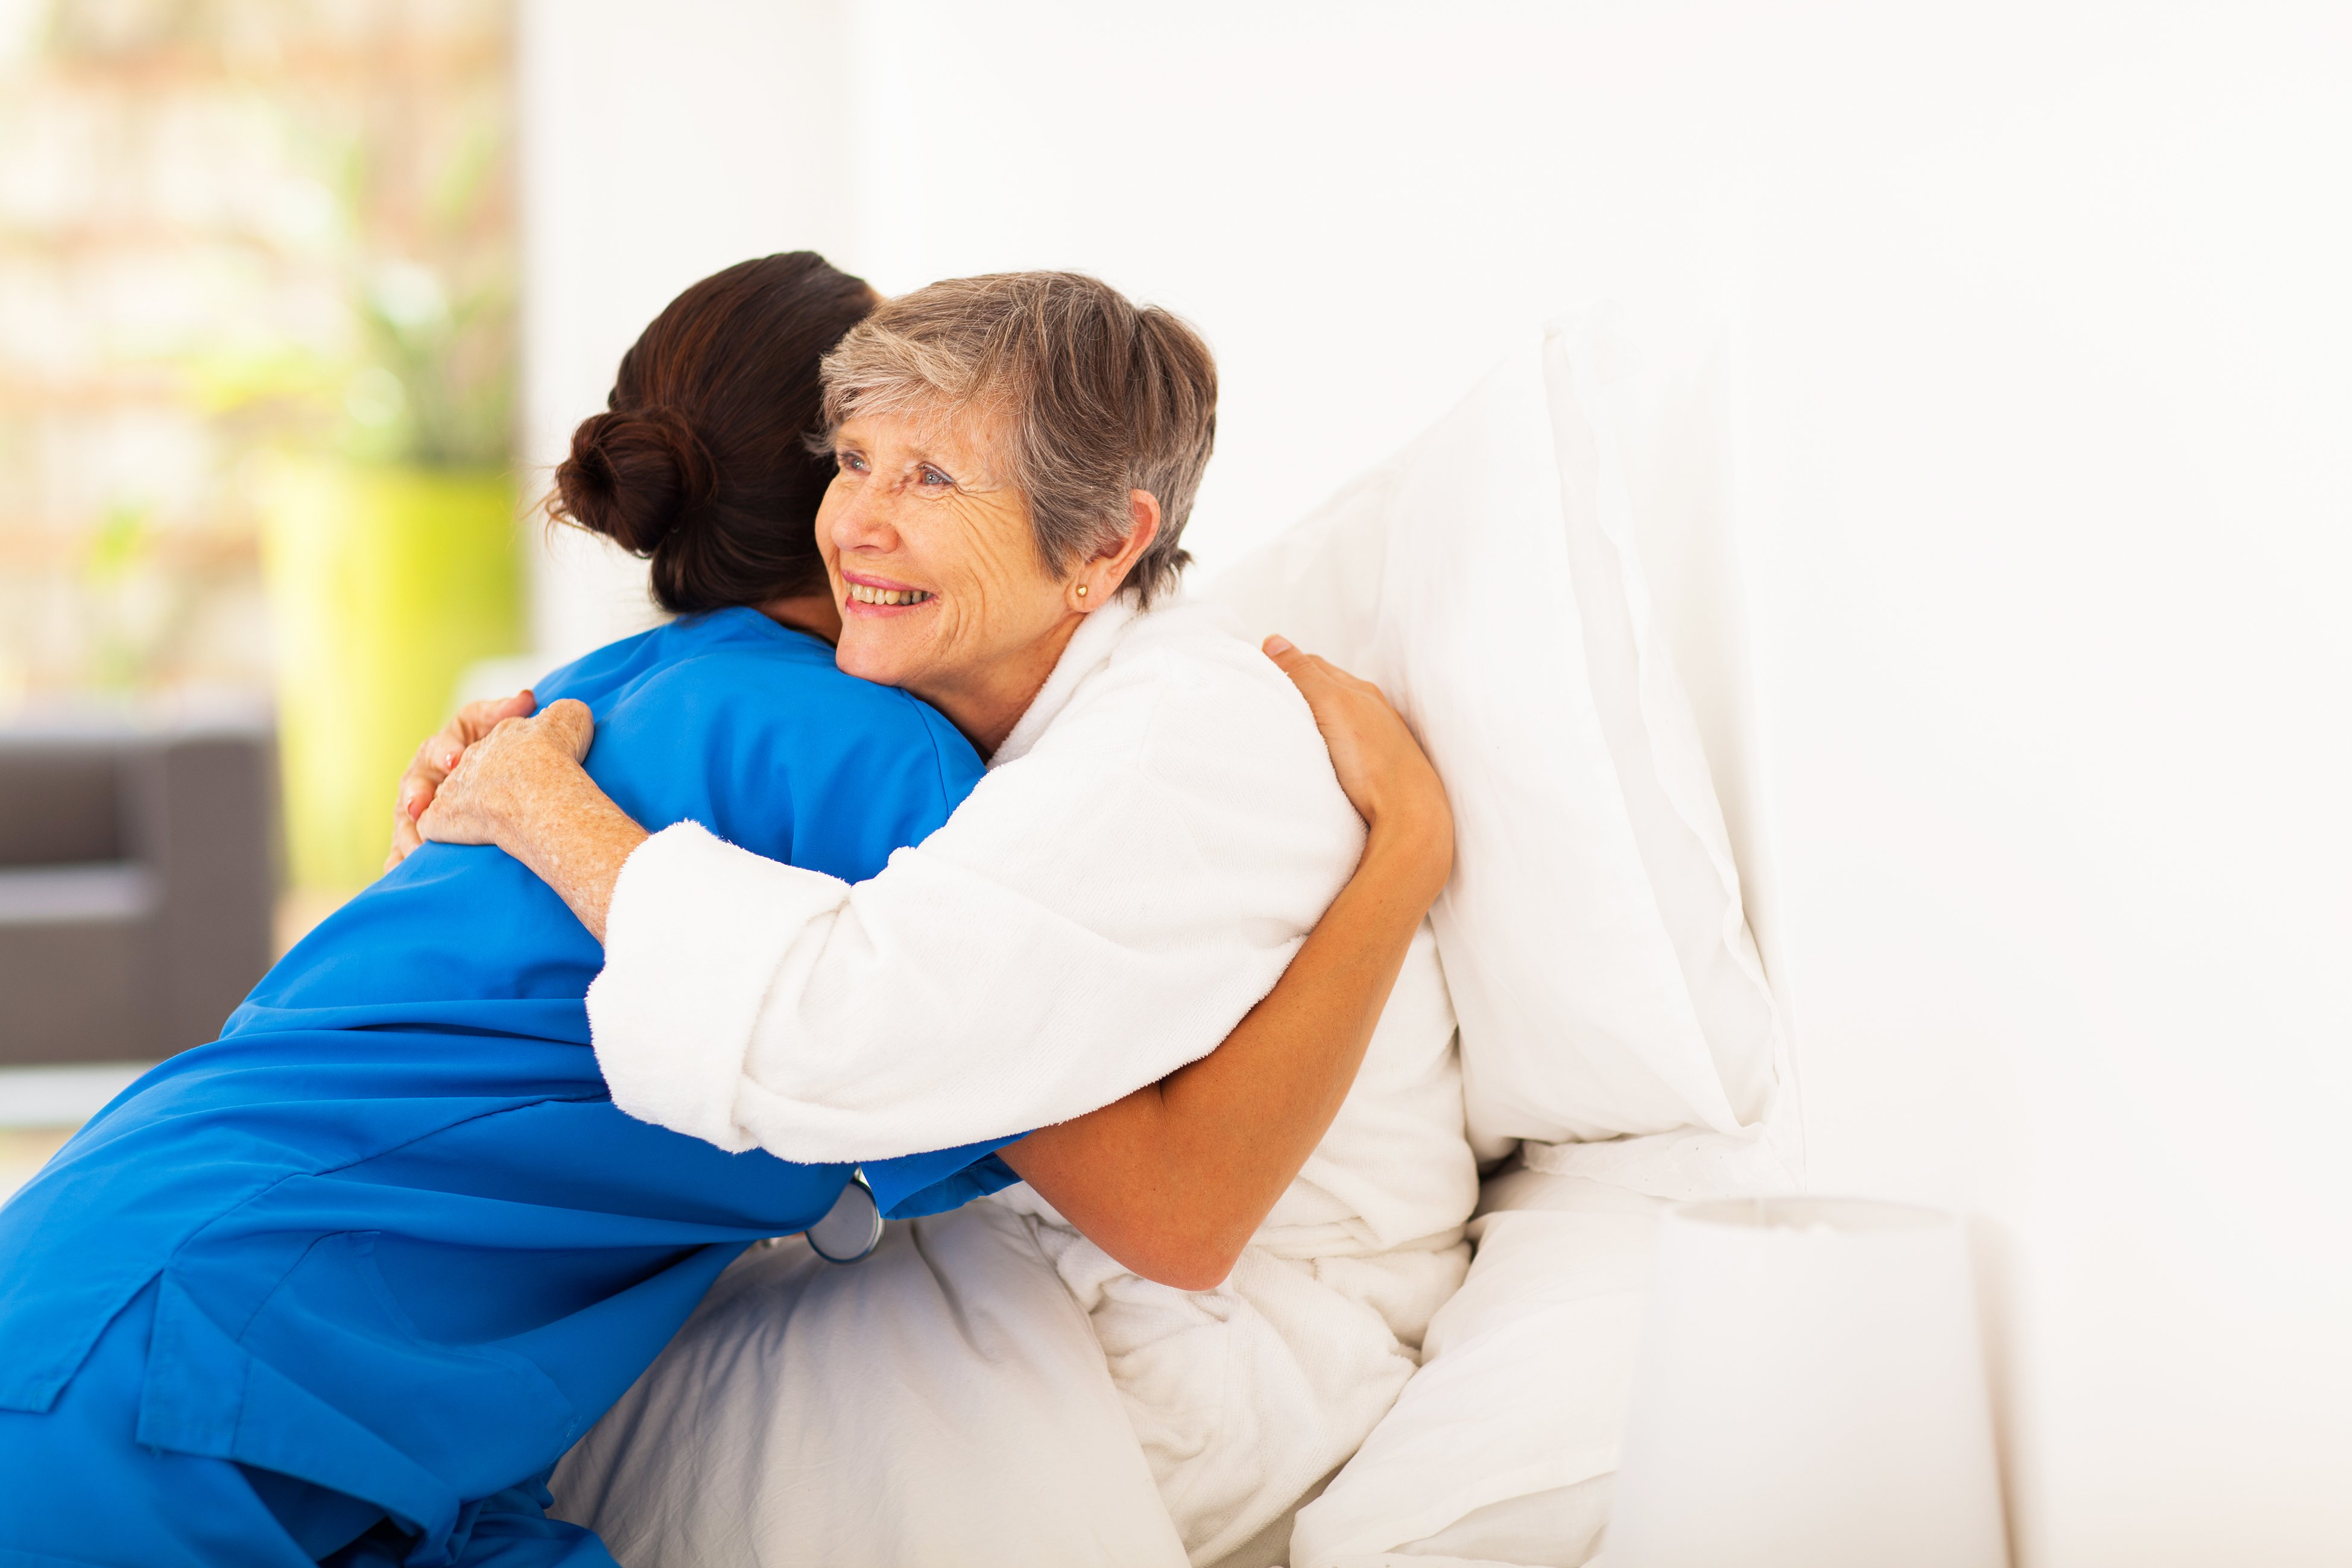 When is the Right Time to Discuss Senior Care?